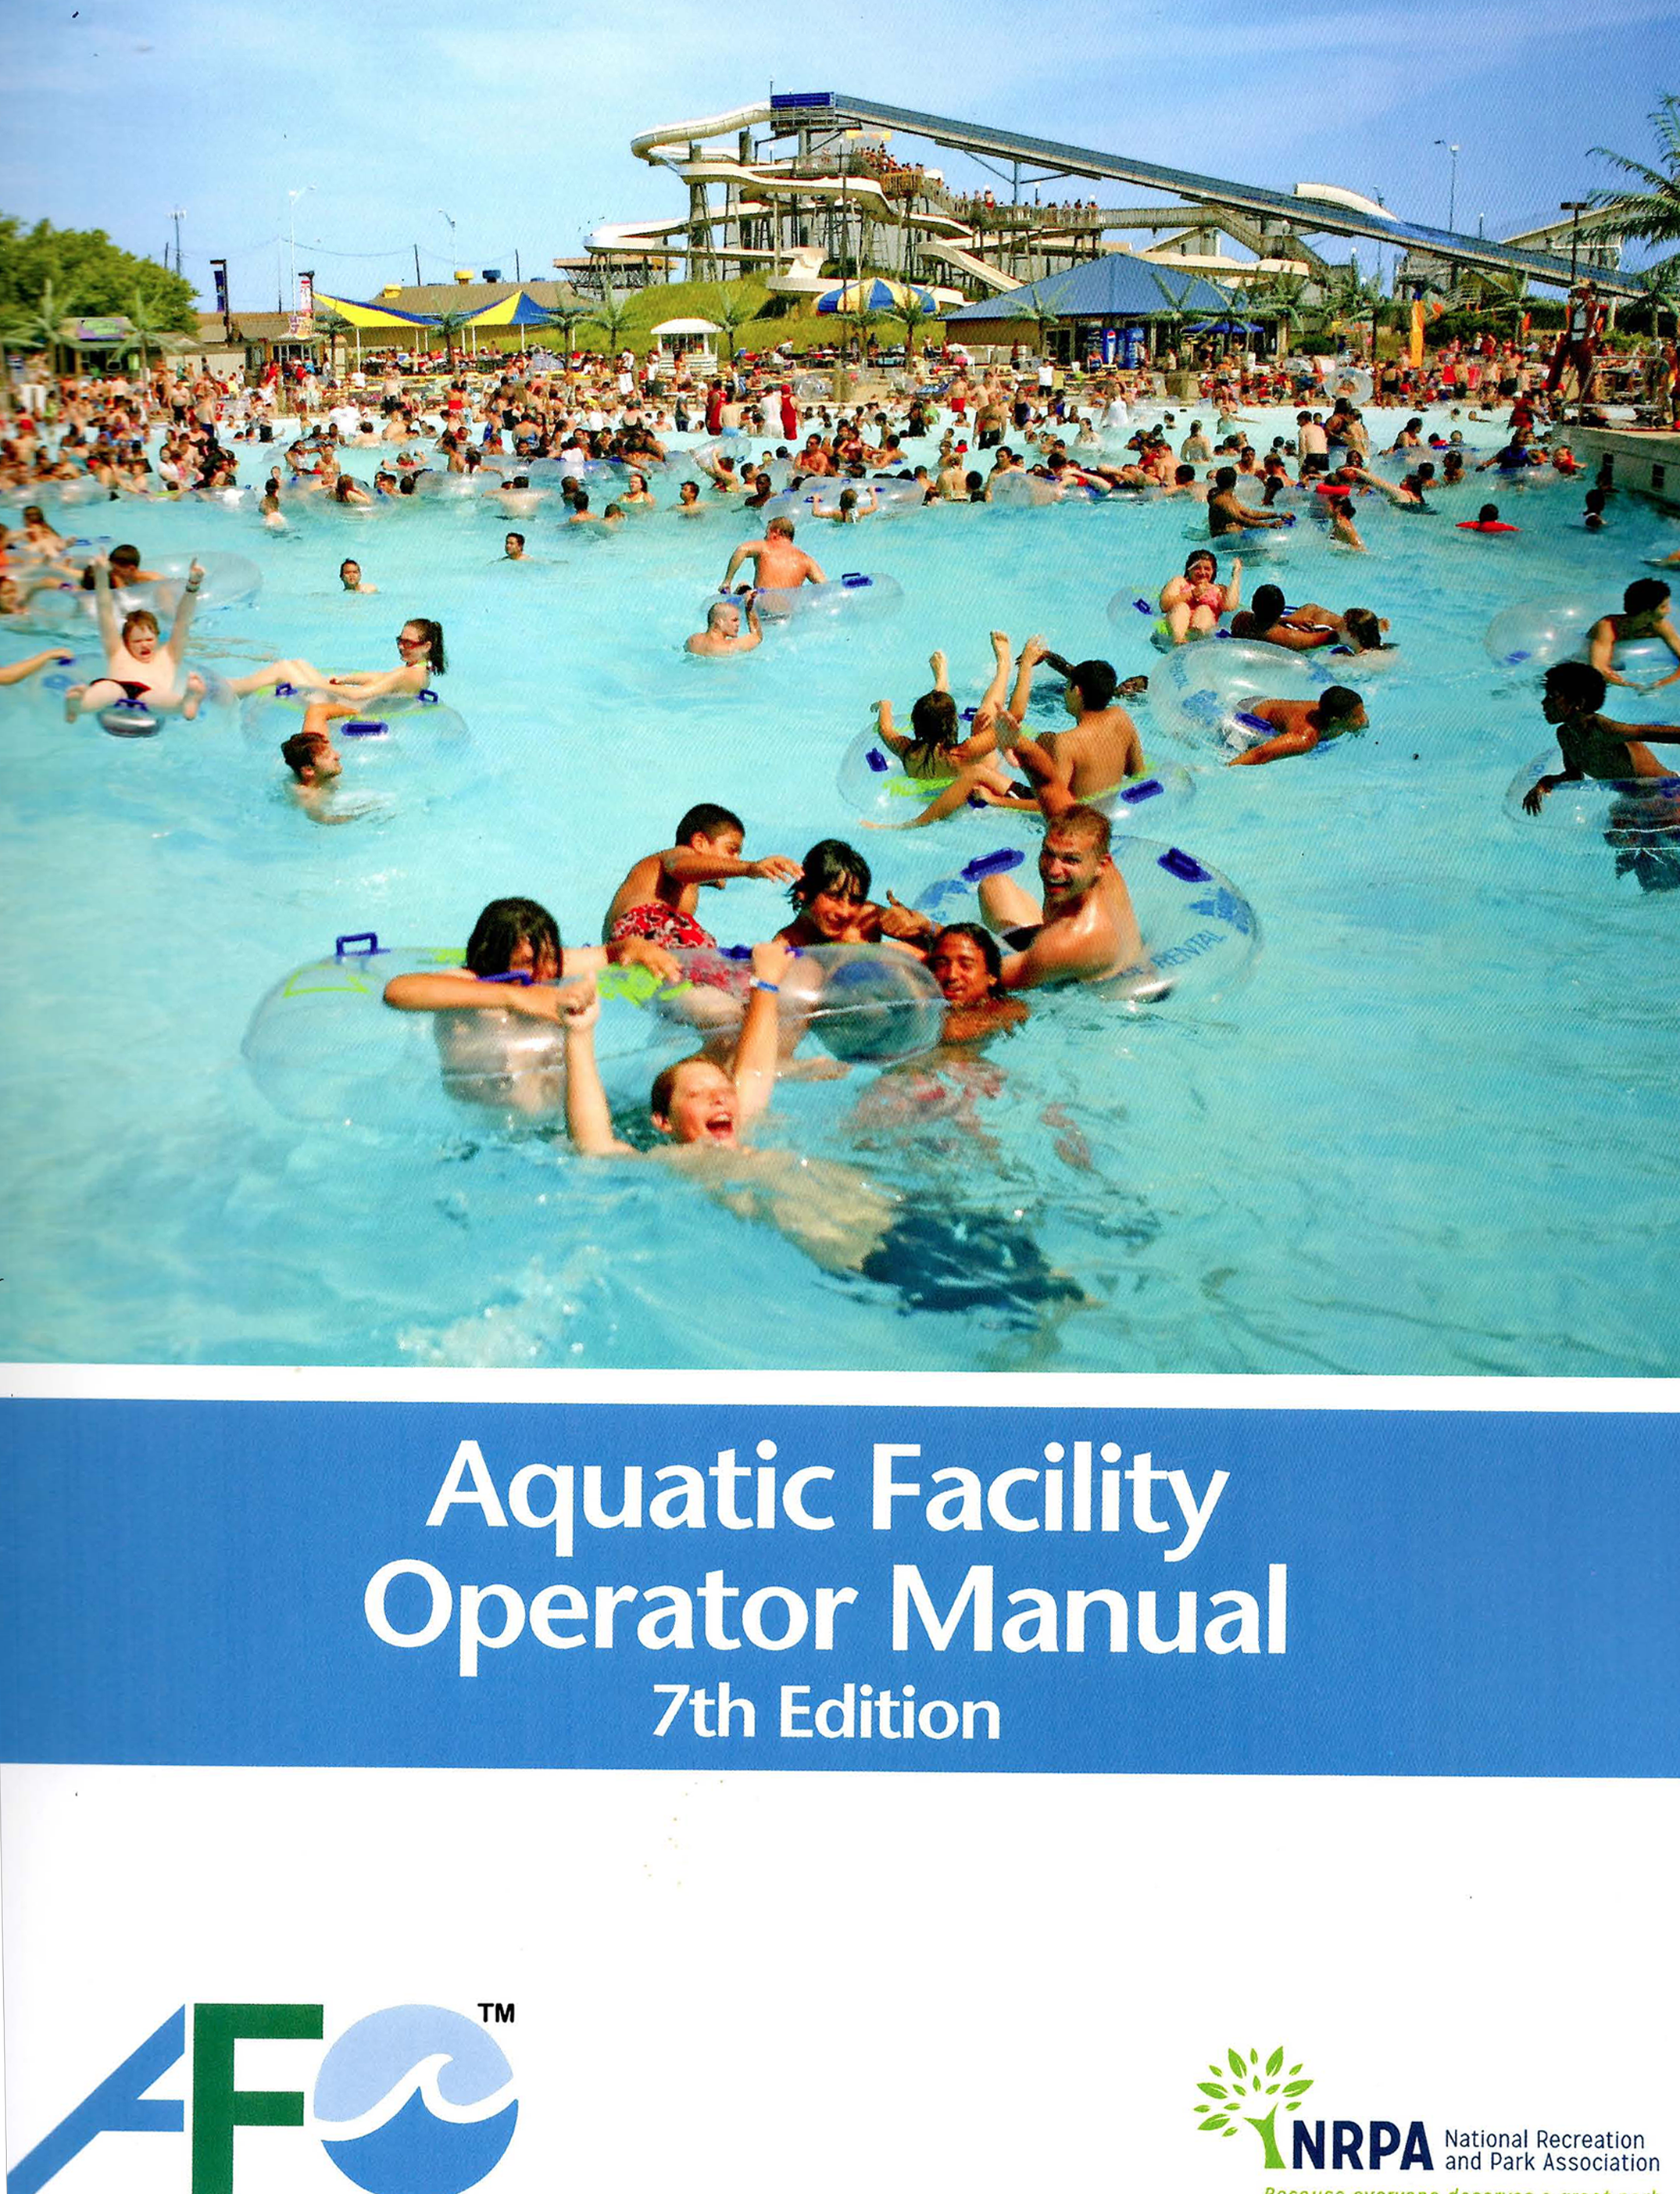 John C. Whitmore AFO 7th Edition, Aquatic Facility Operator Manual Cover